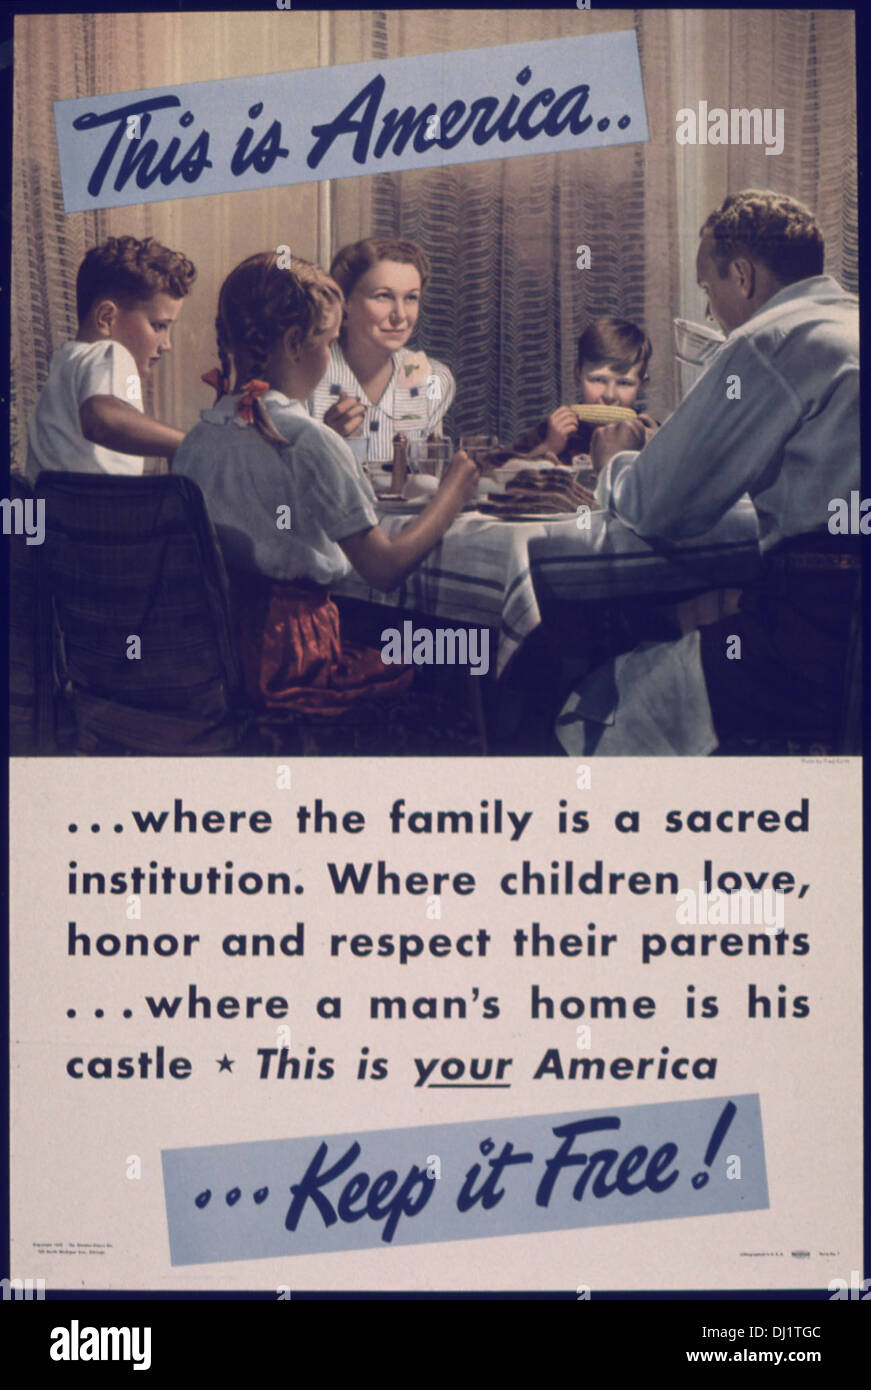 THIS IS AMERICA... WHERE THE FAMILY IS A SACRED INSTITUTION 766 - Stock Image